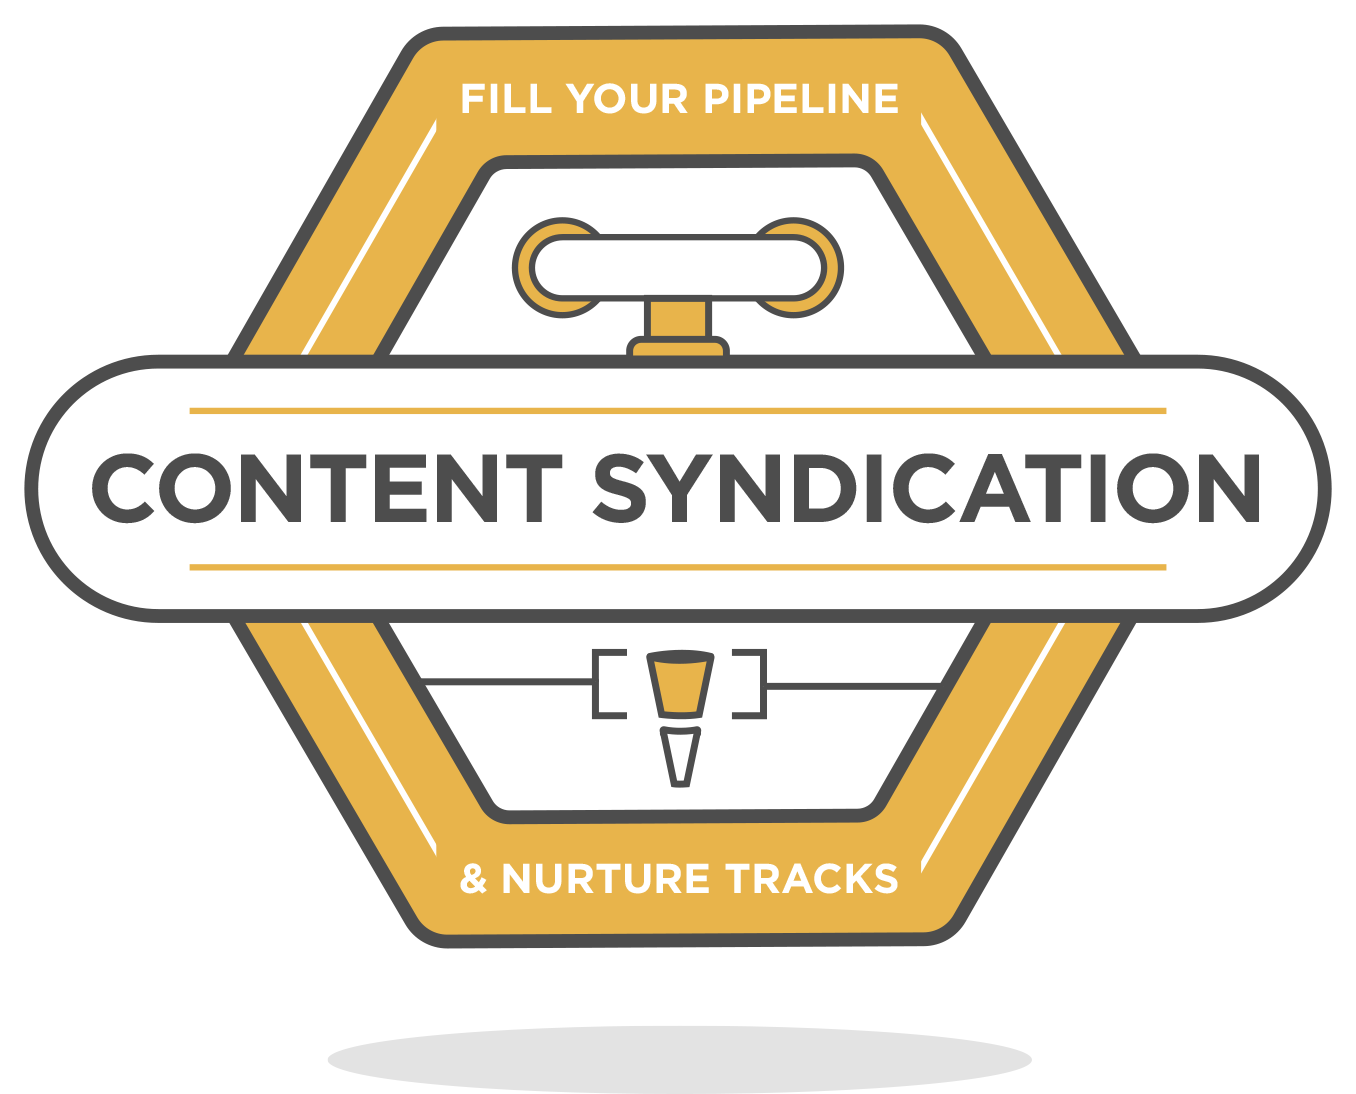 content syndication leads badge icon